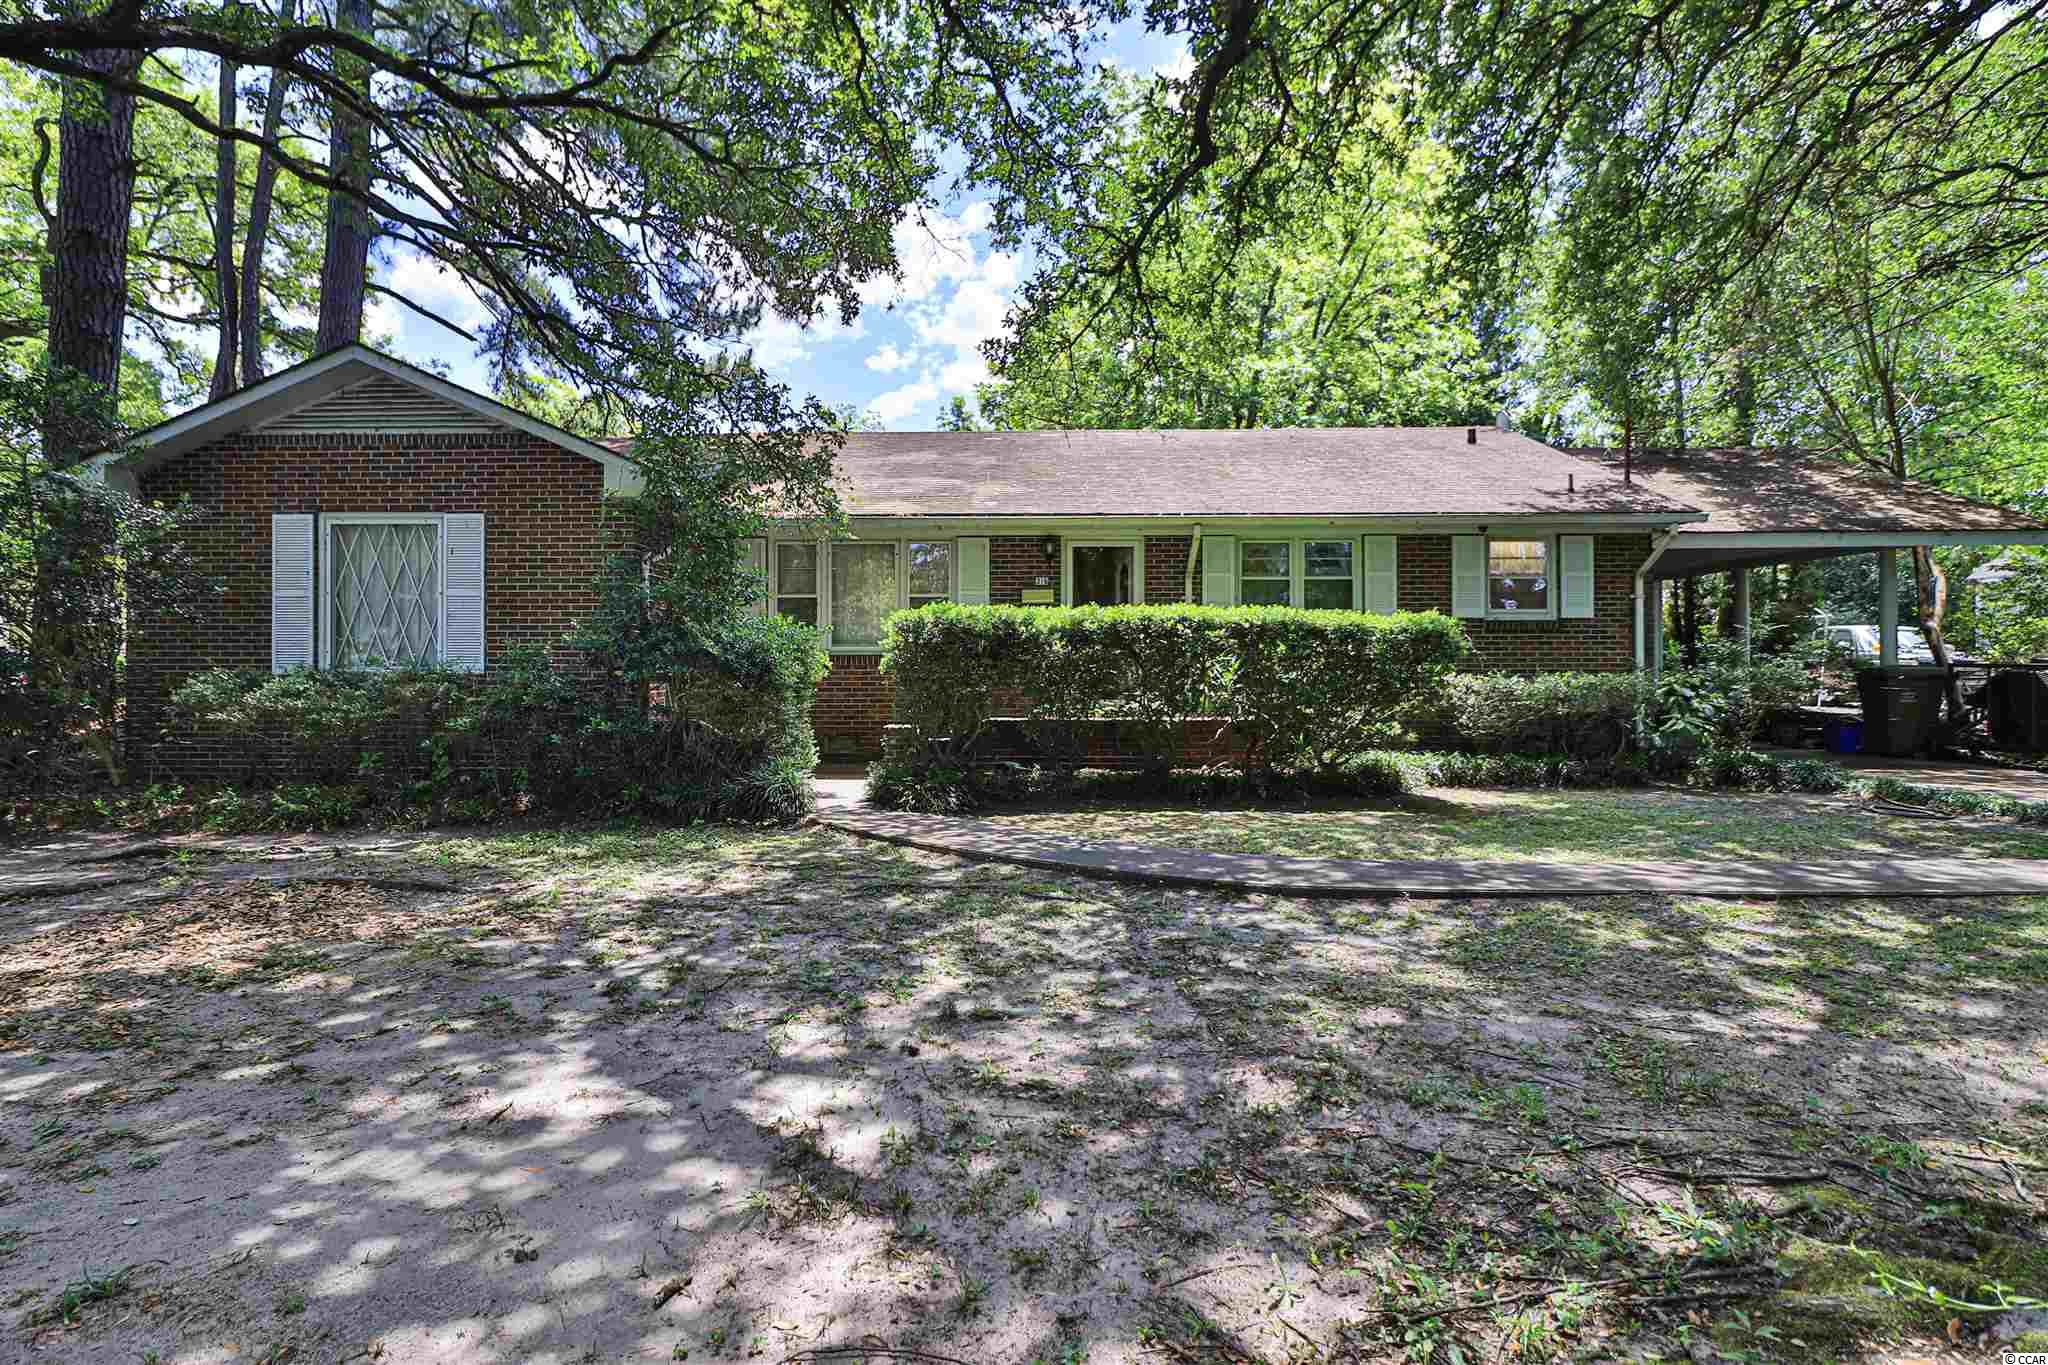 This is the quintessential brick ranch on the corner lot that you've been looking for! It's recently professionally cleaned and ready for its new owner. This large 3 bedroom, 2 bathroom home is ready for a little elbow grease and TLC. It's perfect for a primary, secondary, or investment property. Just blocks from historic Georgetown riverfront, local shops, and grocery stores. Home is being sold as is! Schedule your showing today